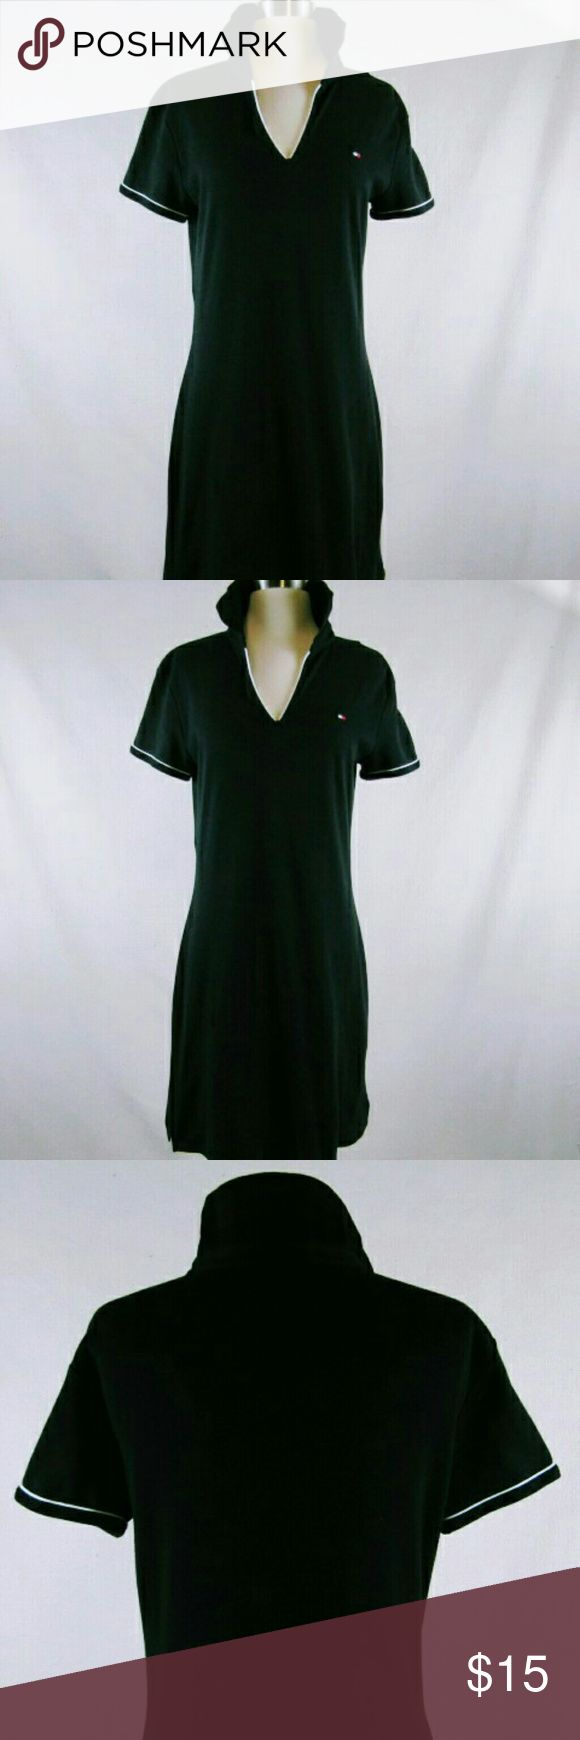 TOMMY HILFIGER BLACK POLO DRESS IN SHORT SLEEVES TOMMY HILFIGER BLACK POLO DRESS WITH A V NECK AND STAND UP COLLAR TRIMMED IN WHITE. V NECK ALSO TRIMMED IN WHITE AND COLLAR IS BLACK KNIT.  SUPER PREPPY SUPER CUTE WITH WHITE TENNIS SHOES. LOOSE FITTING WITH A CUT IN WAIST TO FLATTER YOUR FIGURE. NOT A MINI BUT FALLS ABOVE THE KNEE. 100% THICK COTTON. THIS IS NOT A POOR QUALITY COTTON.  NOT LINED BUT DOESNT NEED A LINING. BUST 36. WAIST 32/33 WEIGHT. 1.2 LBS. TOMMY HILFIGER Dresses